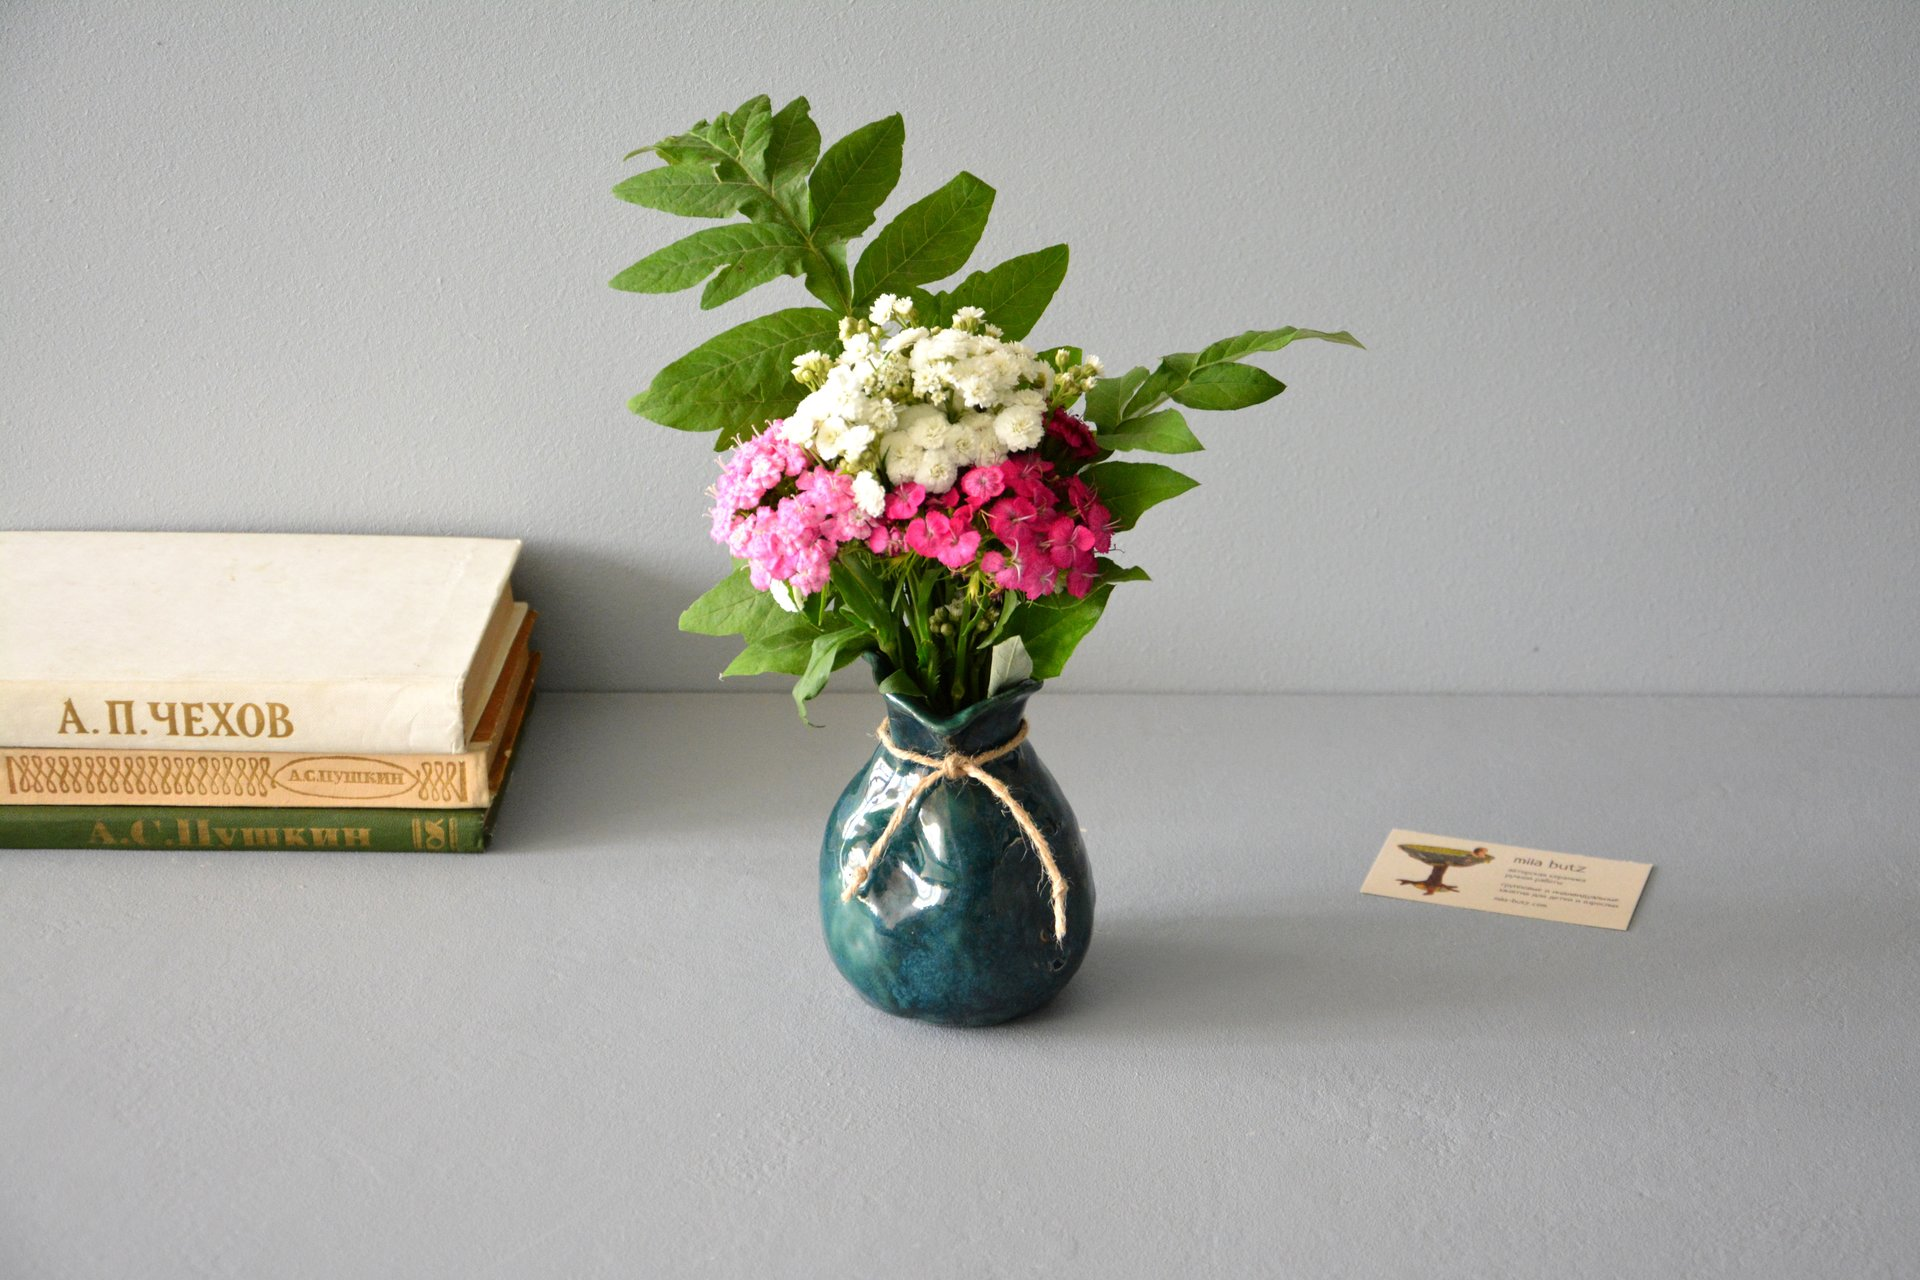 Small Vase or flowers «Incredible Green Bagful», height - 12 cm, color - deep emerald. Photo 1006.